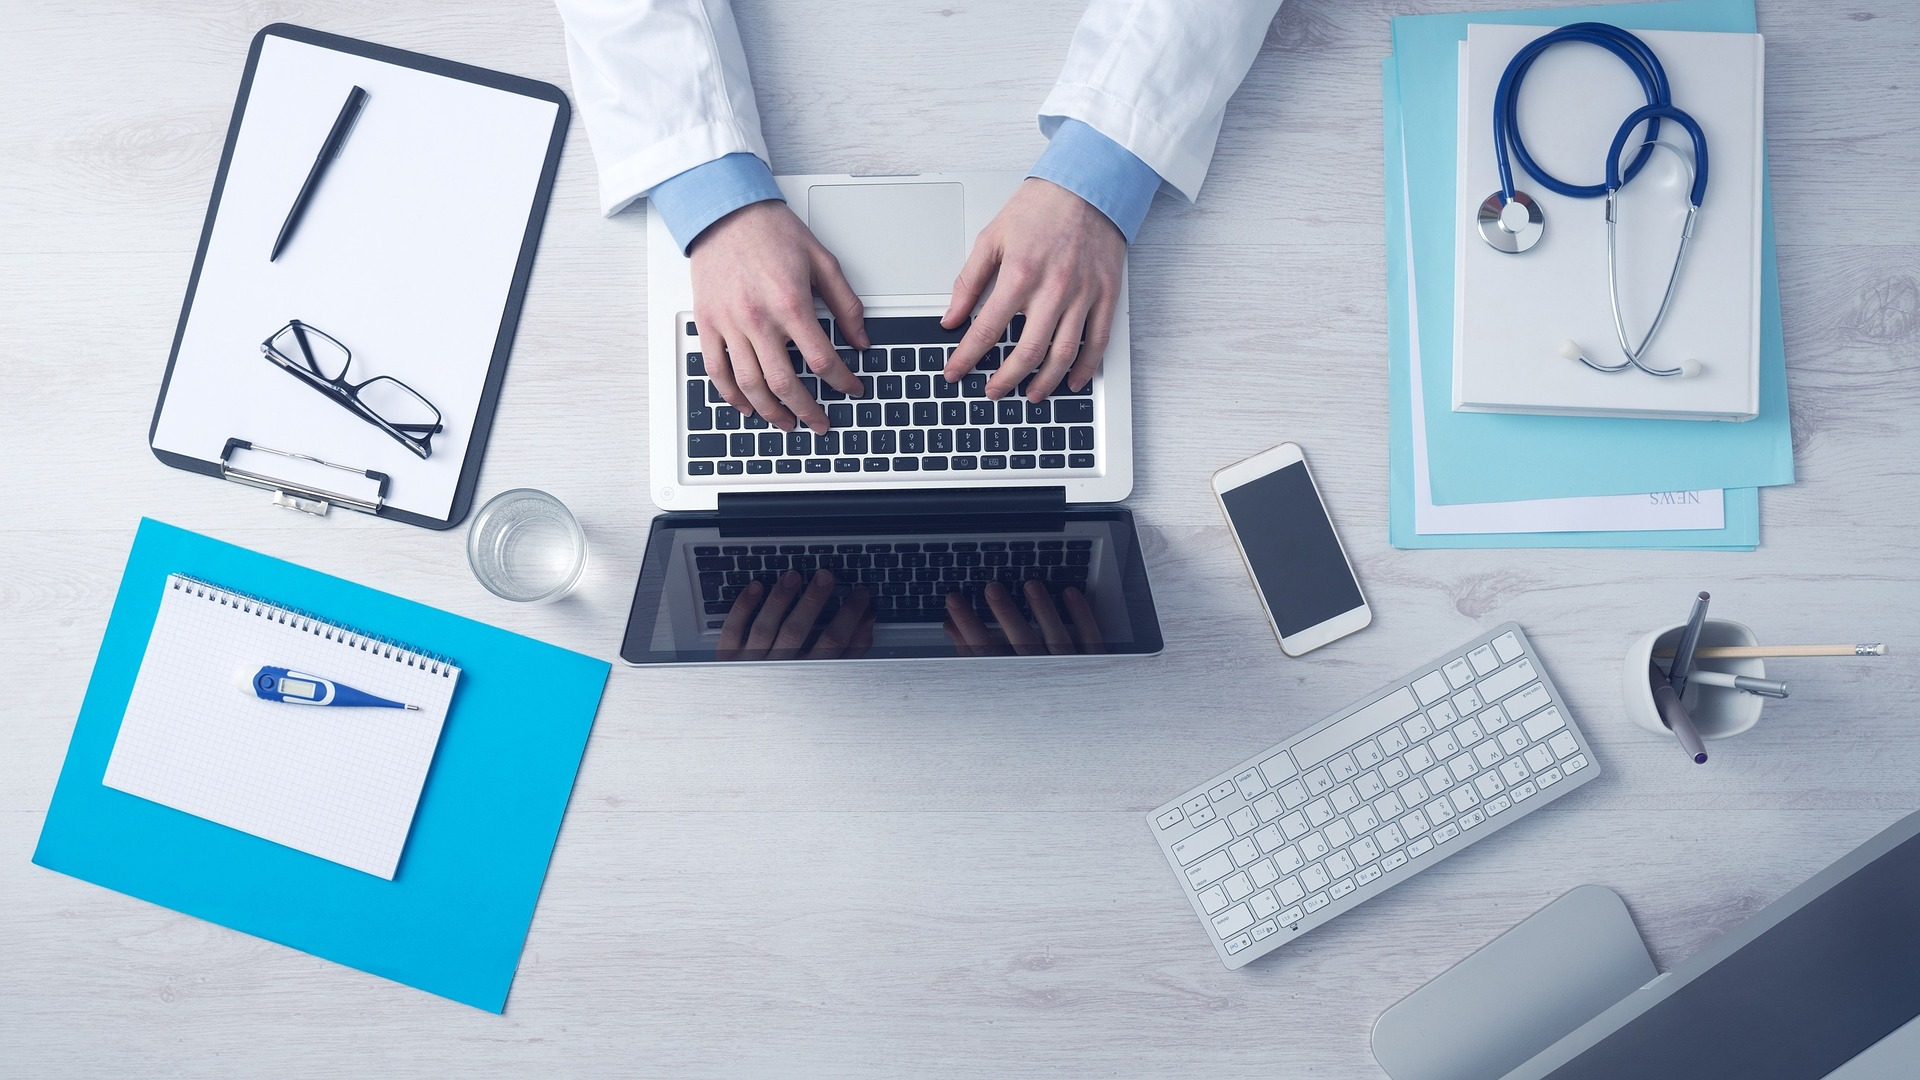 electronic medical records a cure for health care case study essay Are electronic medical records a cure for health care case study c reating more efficient health care systems in the united states has been a pressing medical, social, and political issue for decades.